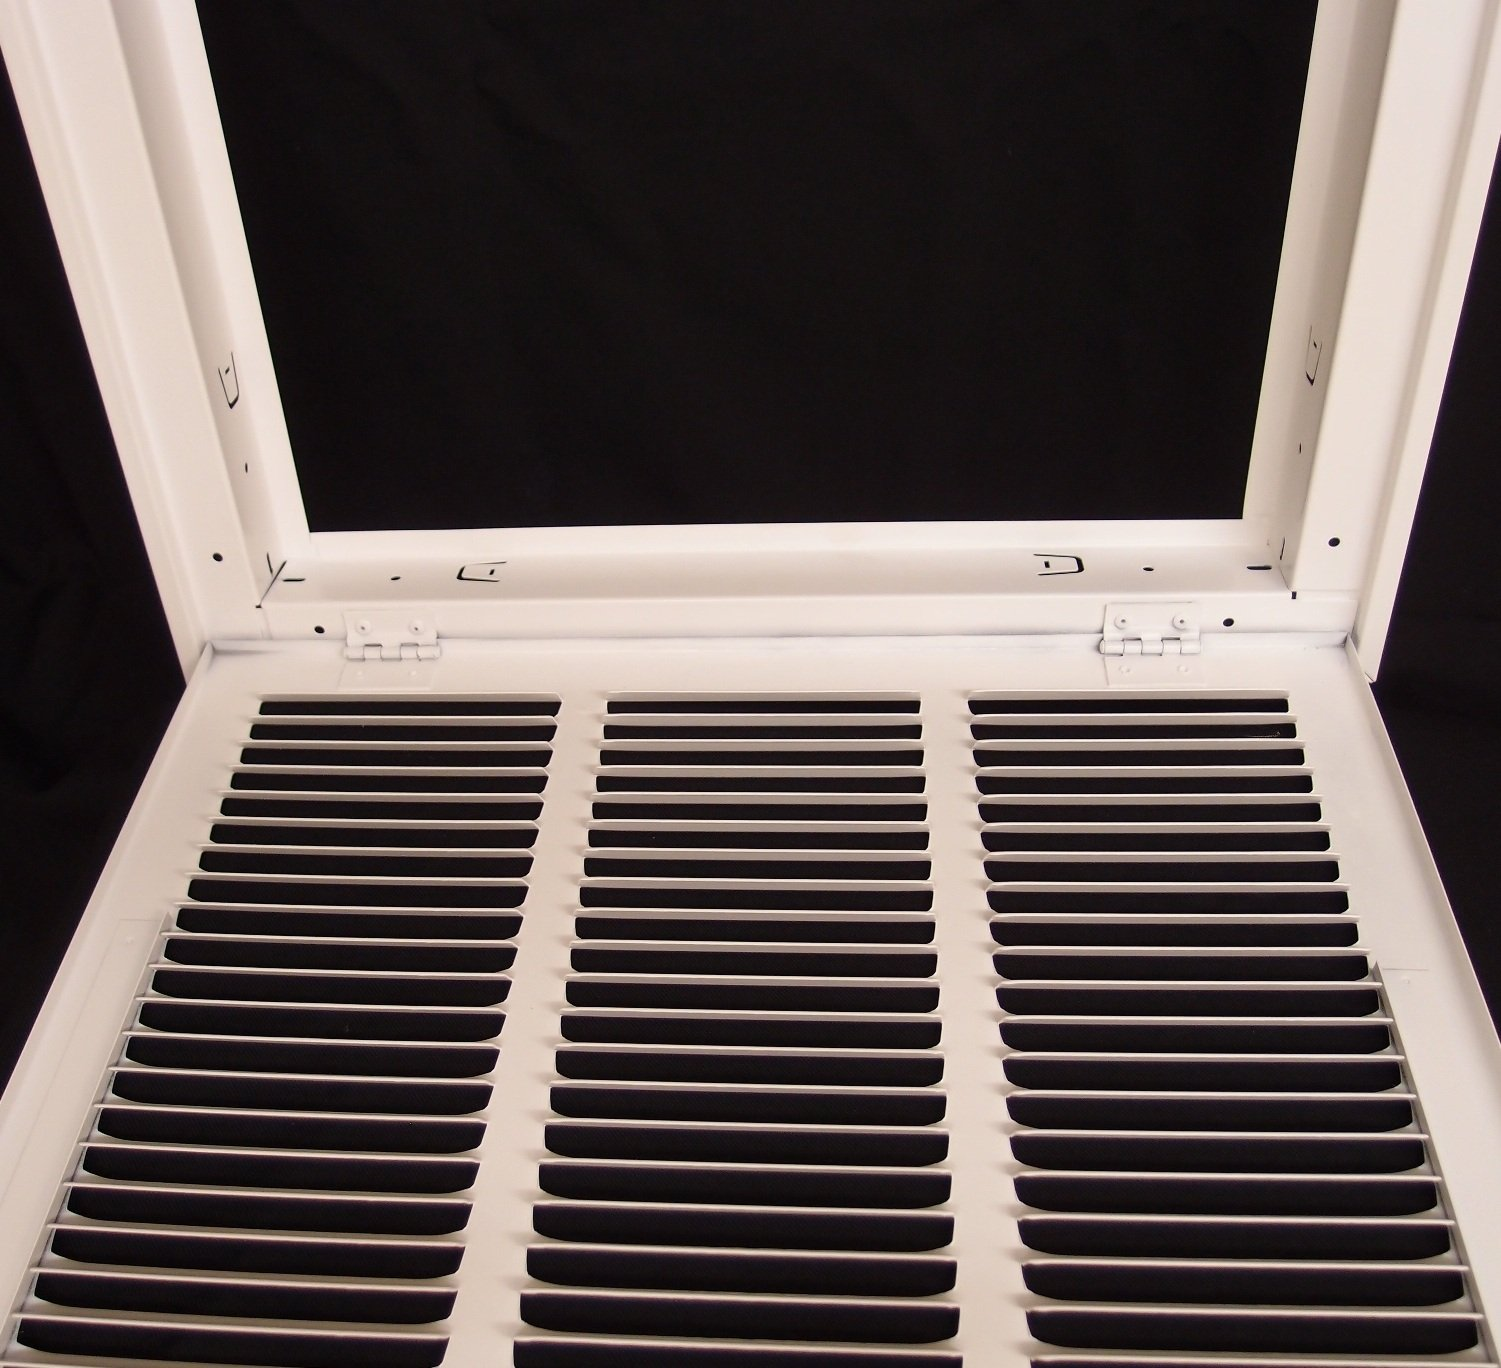 14'' X 20 Steel Return Air Filter Grille for 1'' Filter - Fixed Hinged - ceiling Recommended - HVAC DUCT COVER - Flat Stamped Face - White [Outer Dimensions: 16.5''w X 22.5''h] by HVAC Premium (Image #6)